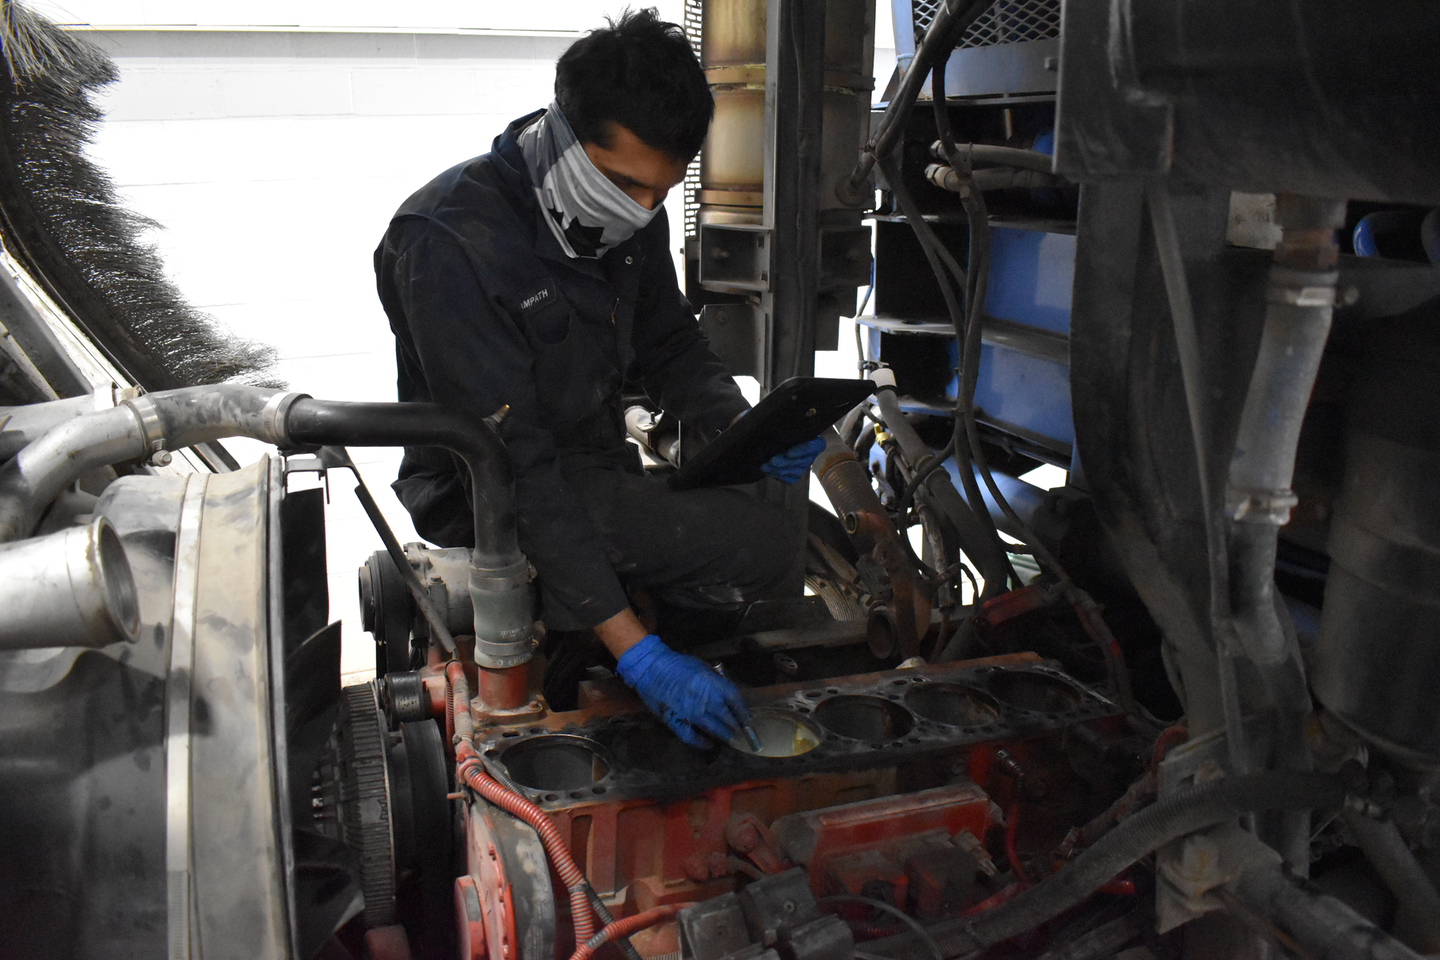 At all Vision service facilities, vehicle check-ins are now completed by a service advisor using Noregon JPRO commercial vehicle diagnostic tools, which automatically open a service event case in ASIST.